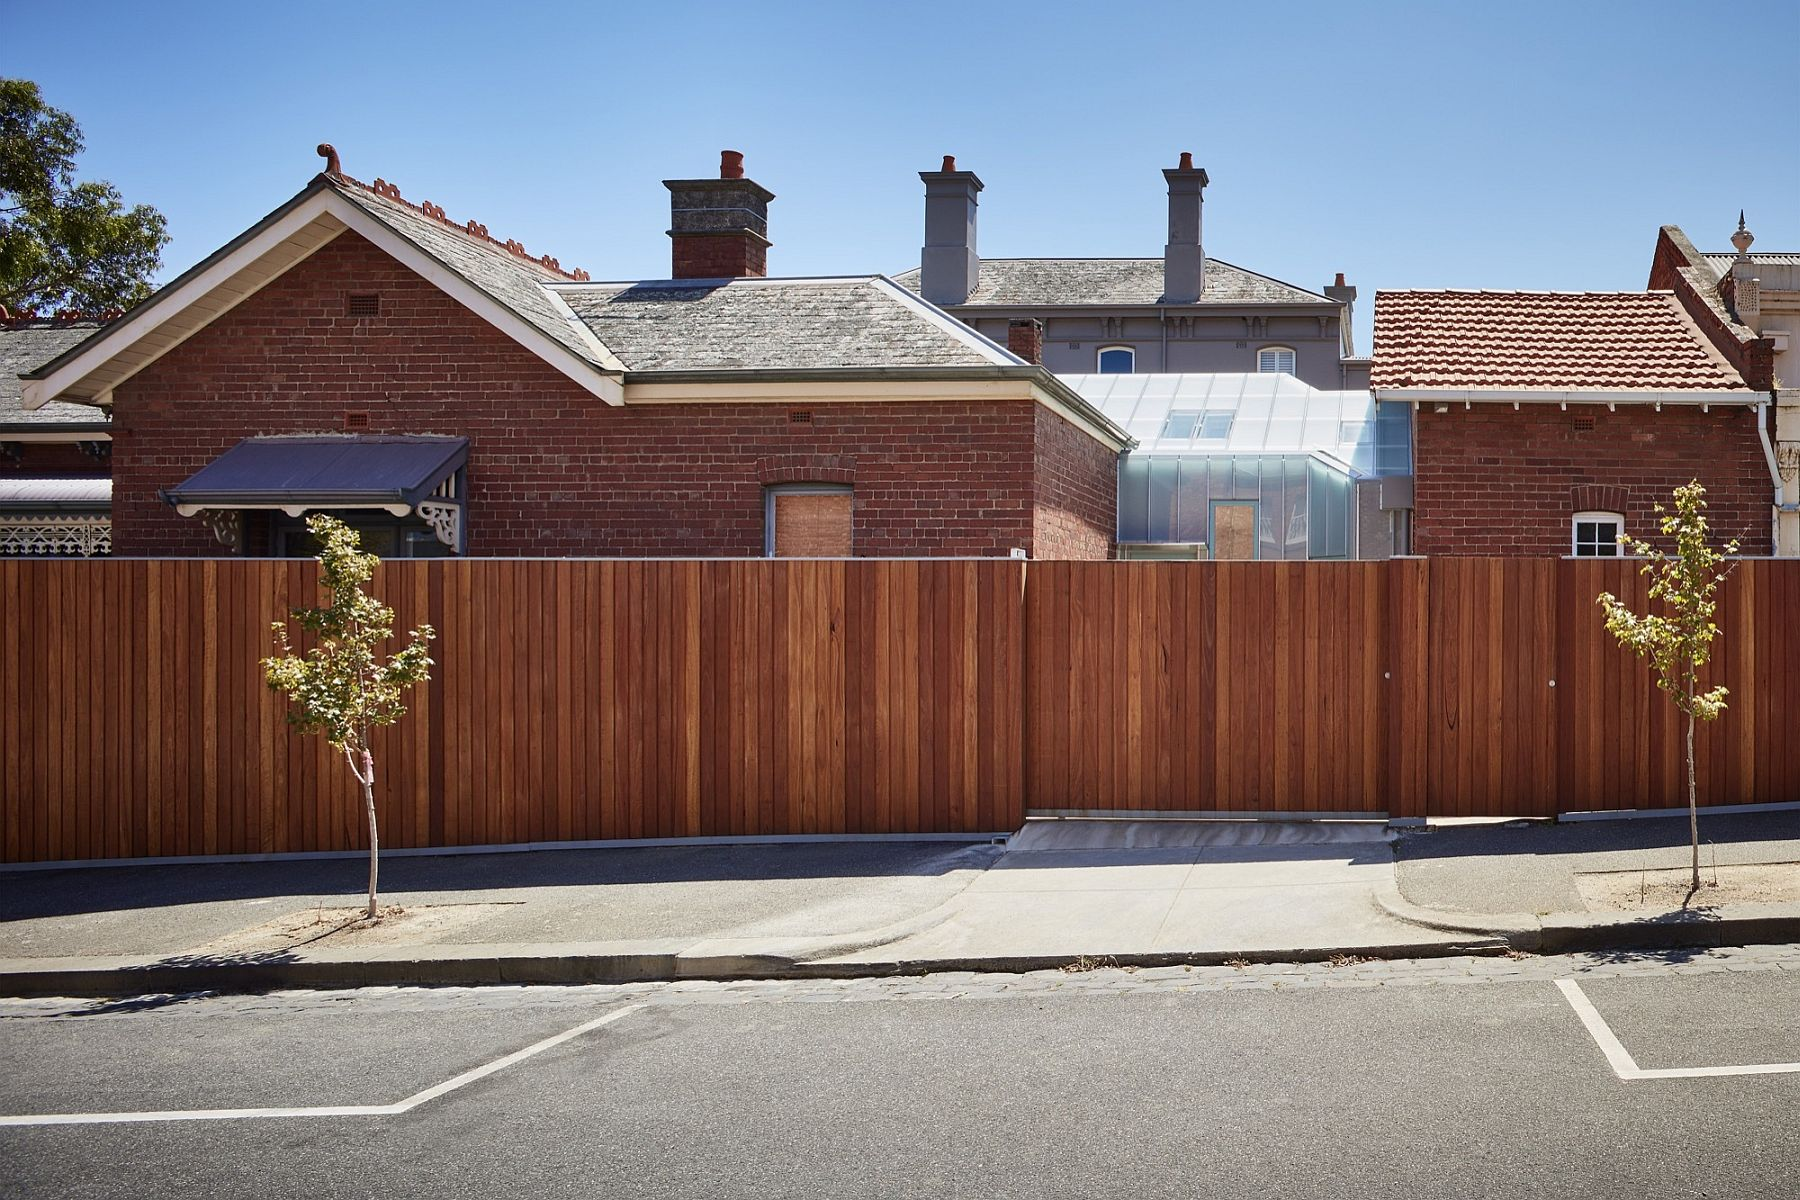 Street view of the transformed home in Melbourne with brick facade